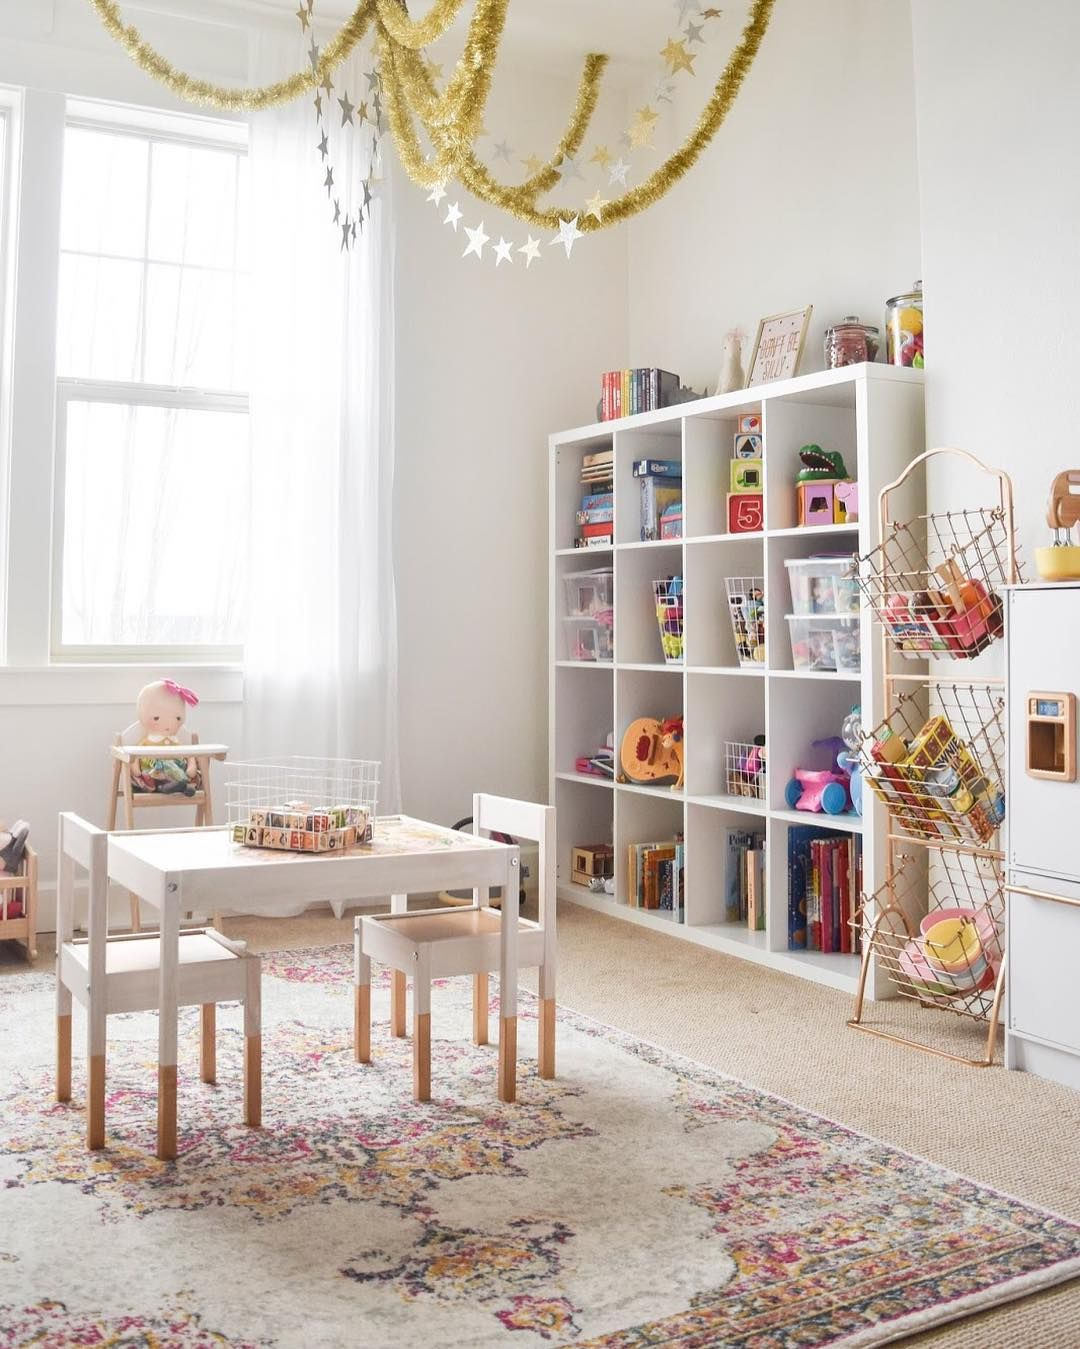 We're In Love With This Playroom Makeover Designed By